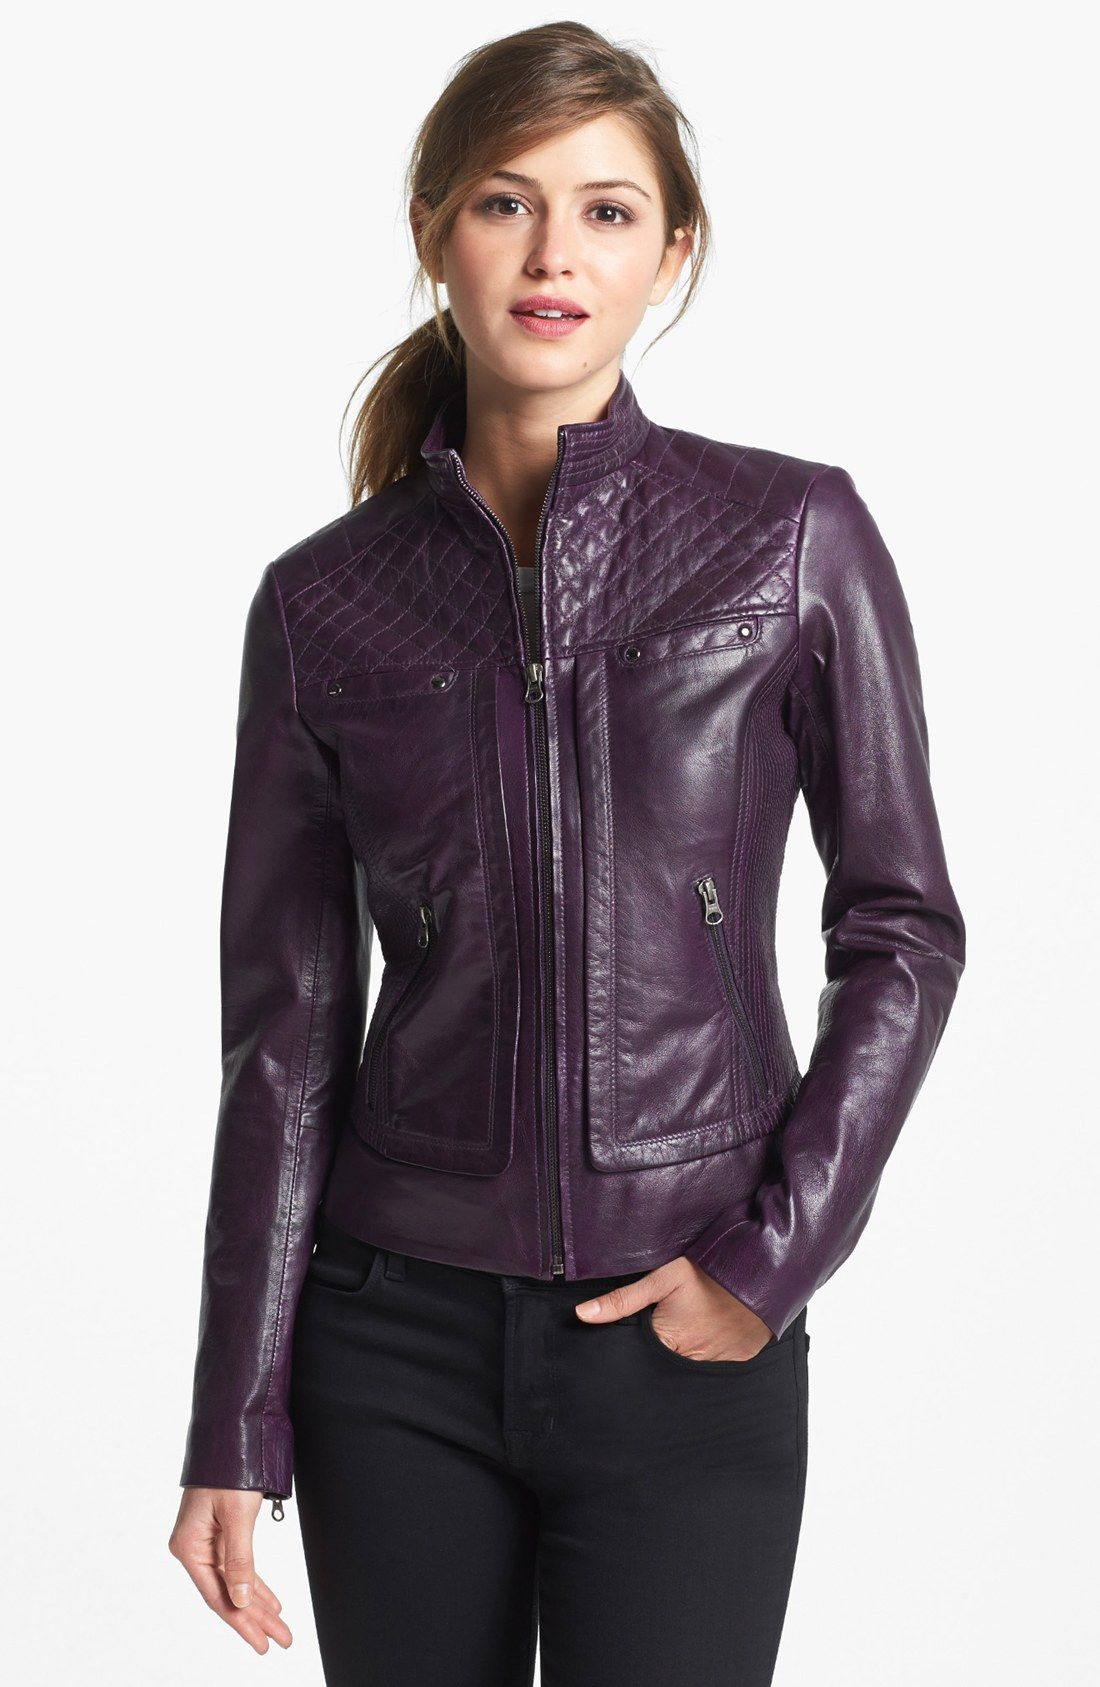 DRESS TRENDS Women's leather jacket trends spring 2016